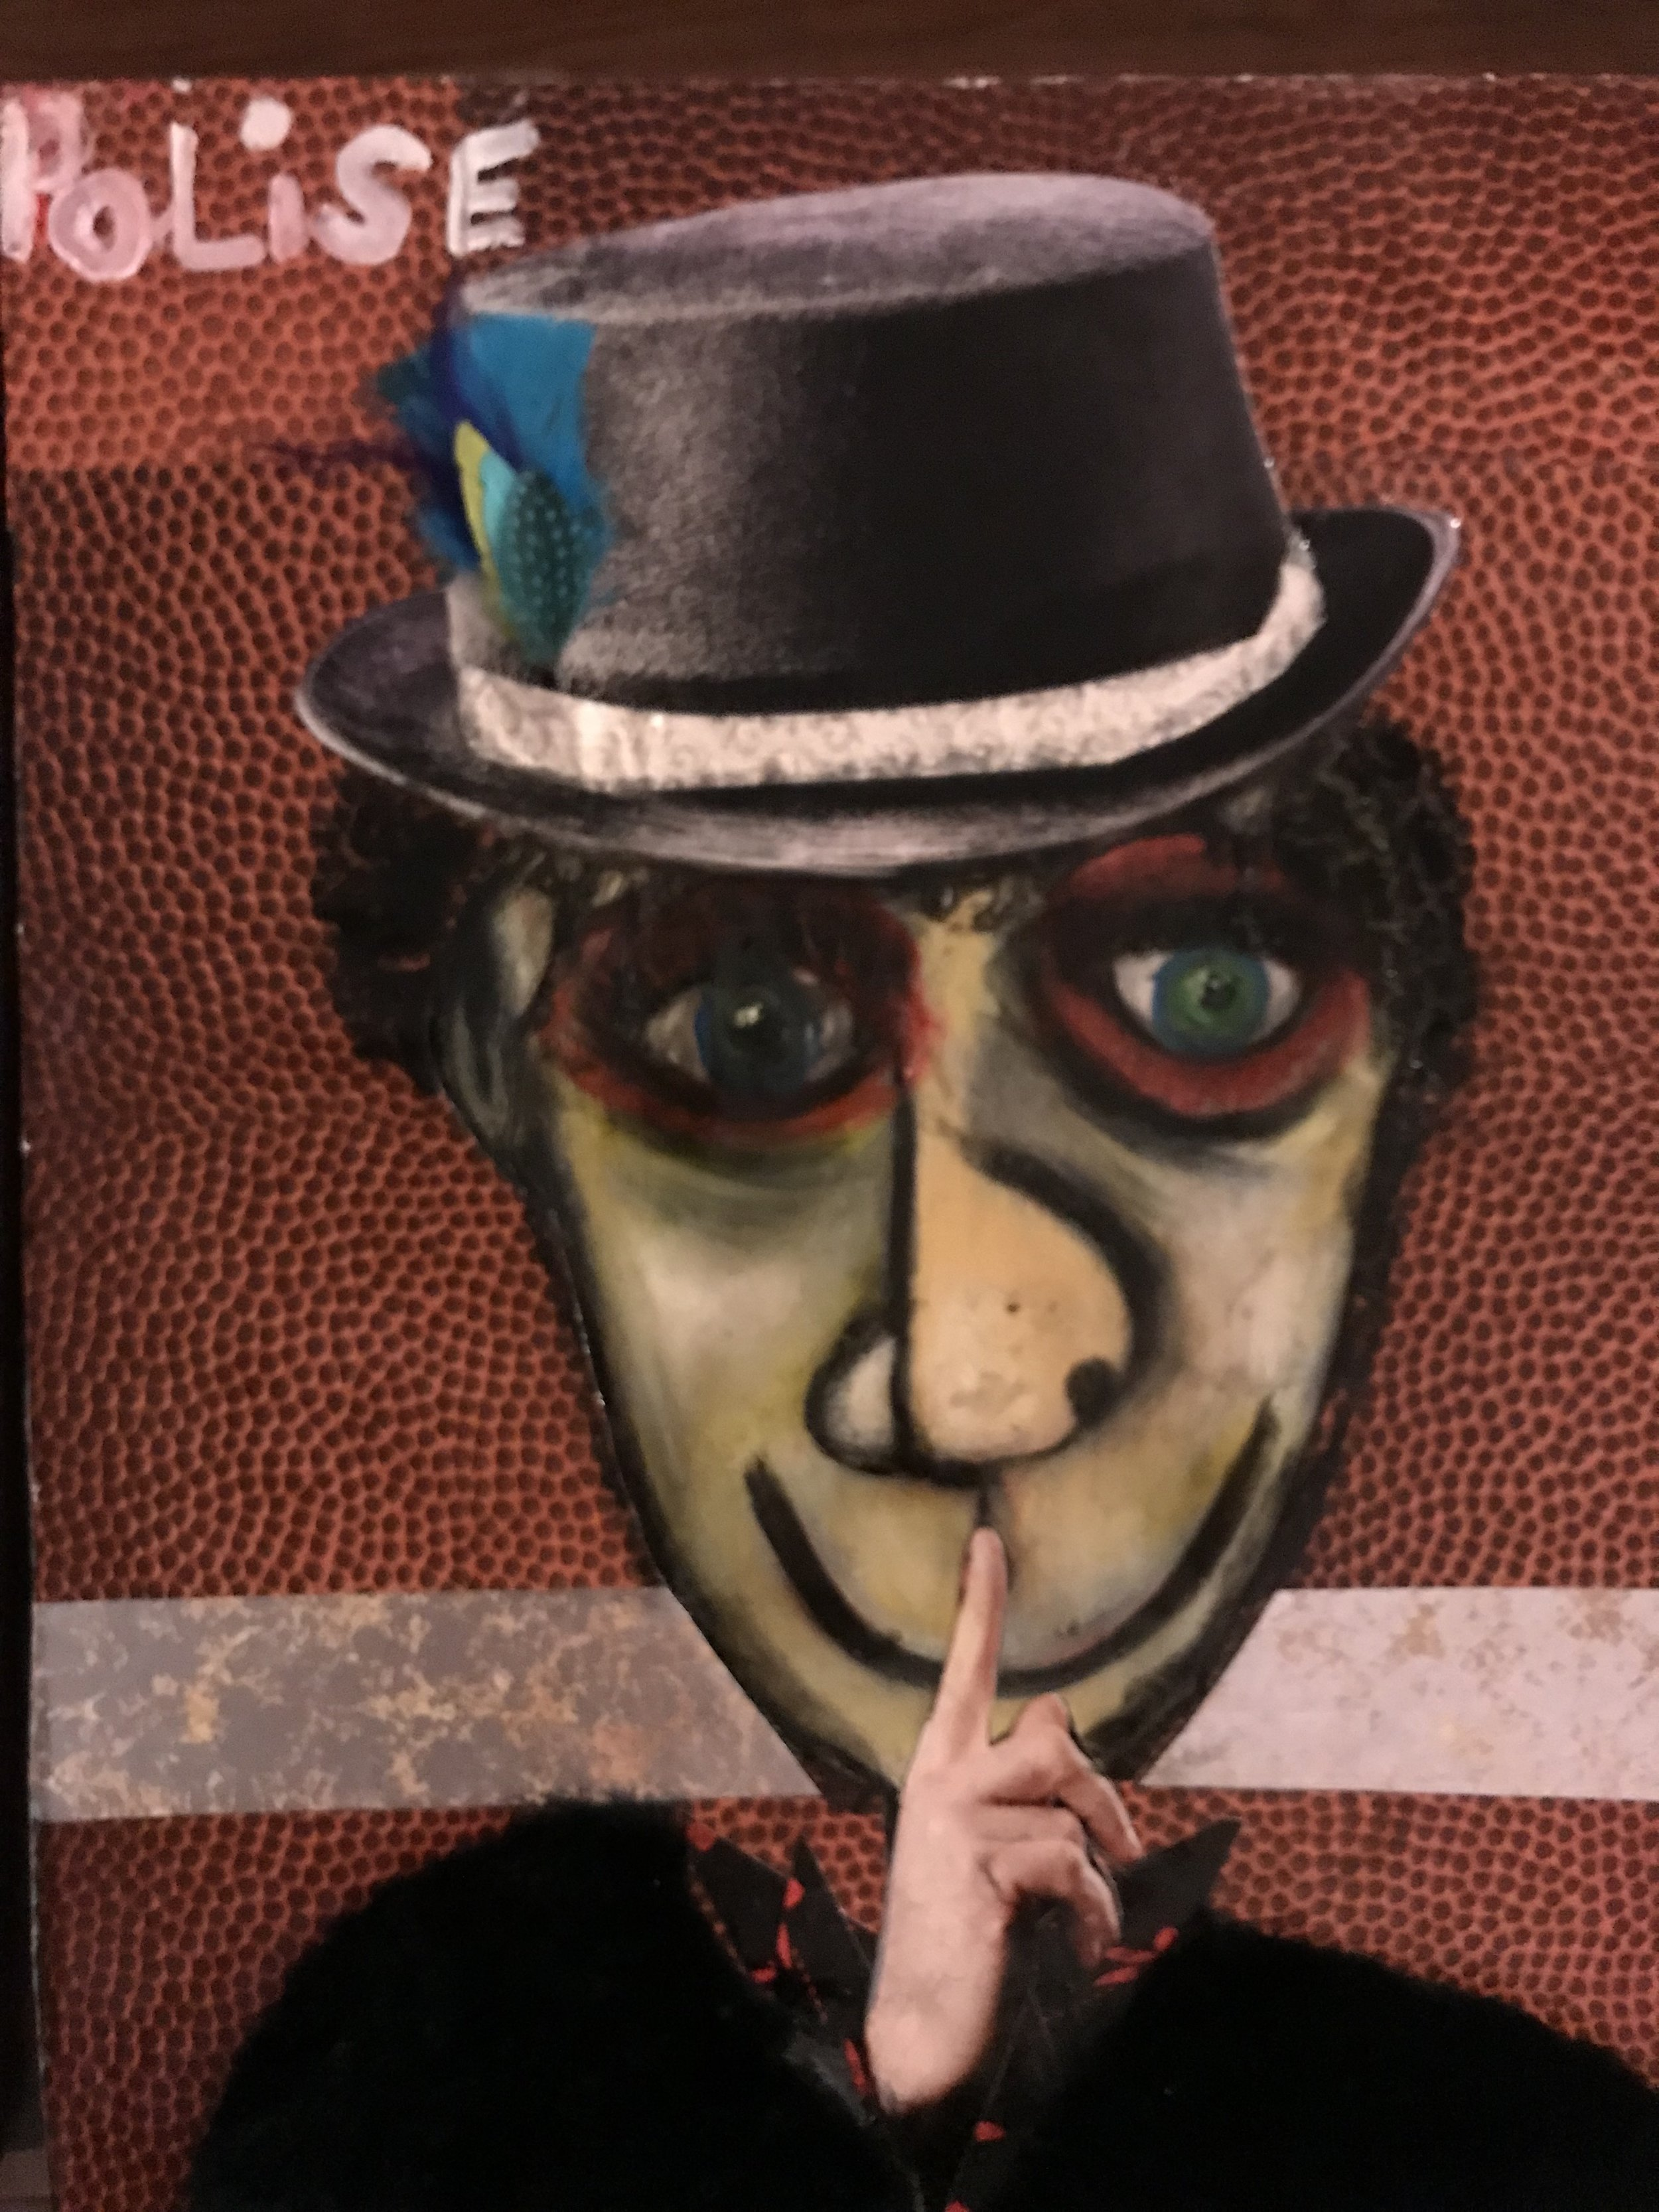 eric polise sherlock holmes image for spread in puppet master magazine issue 1.JPG